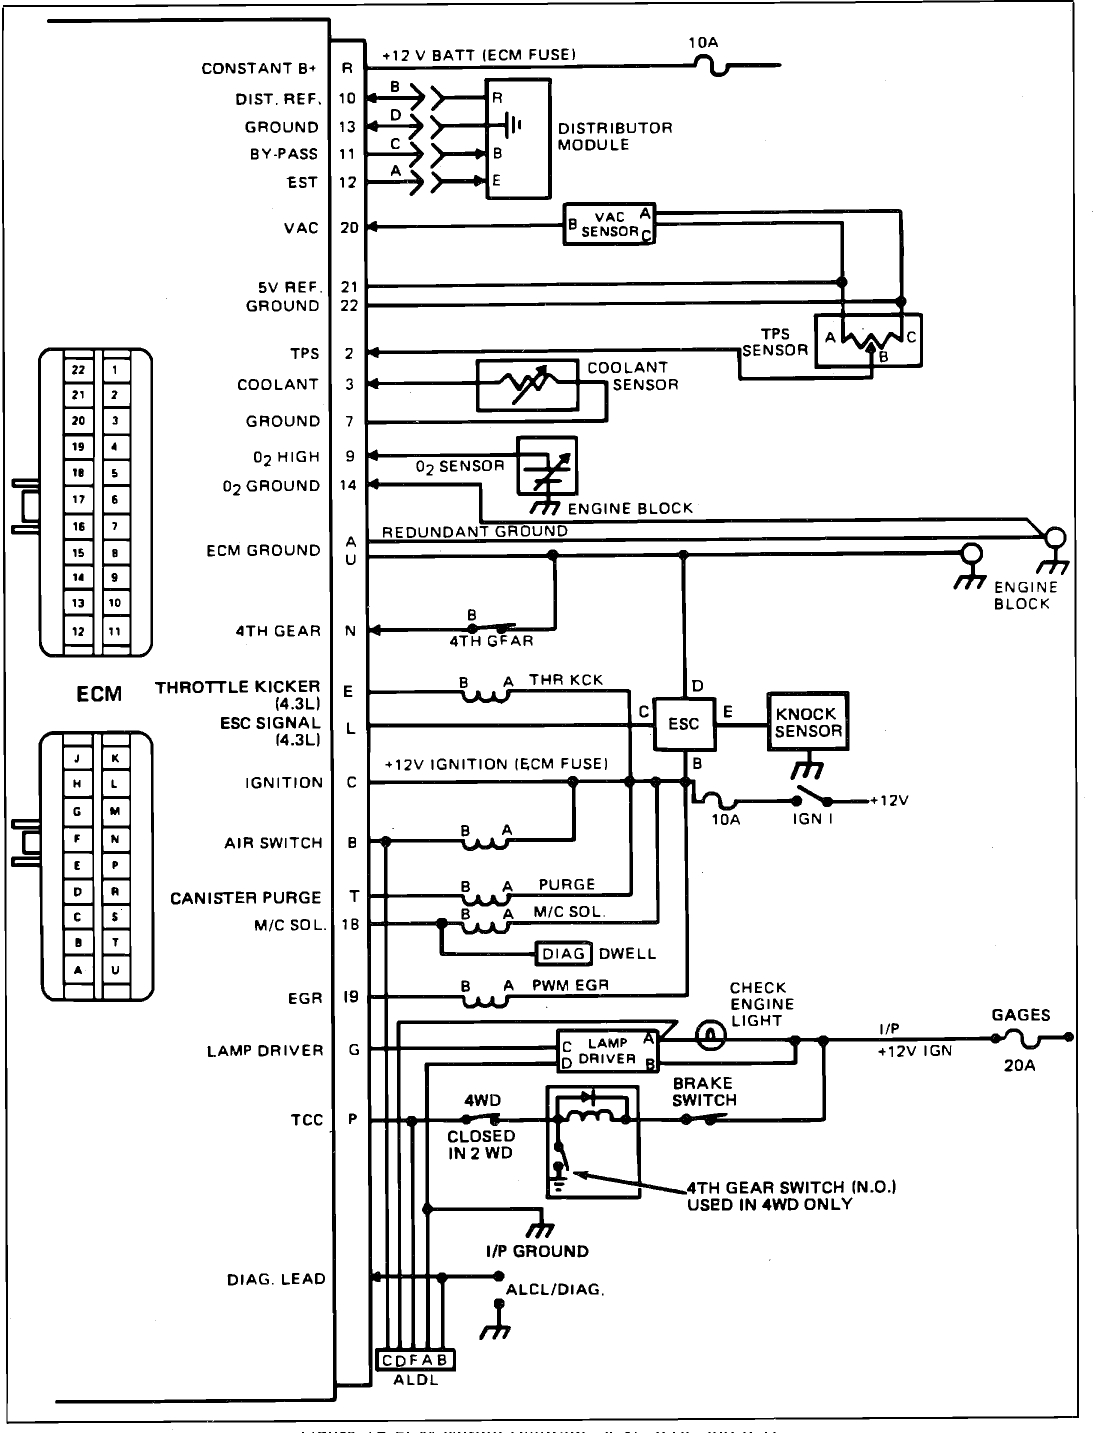 original i need a fuse box diagram with wiring colors Chevrolet G10 at panicattacktreatment.co